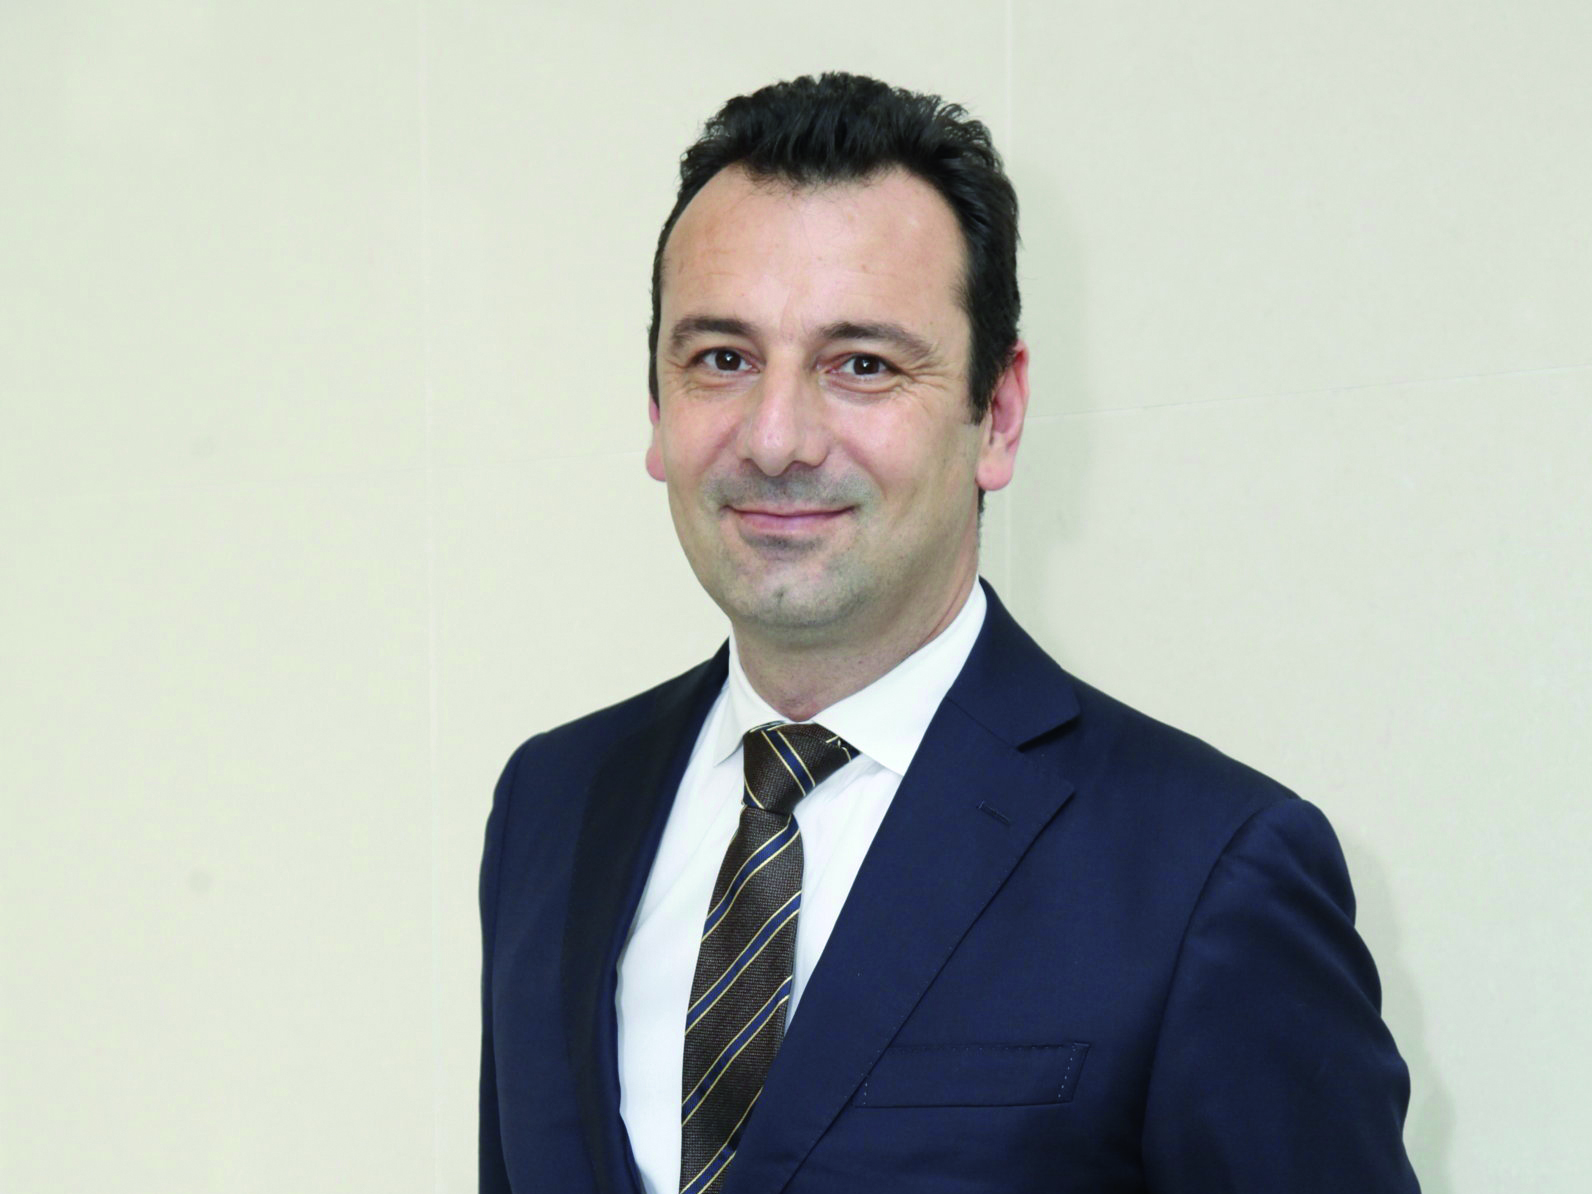 Marco Longoni, Export Division Manager